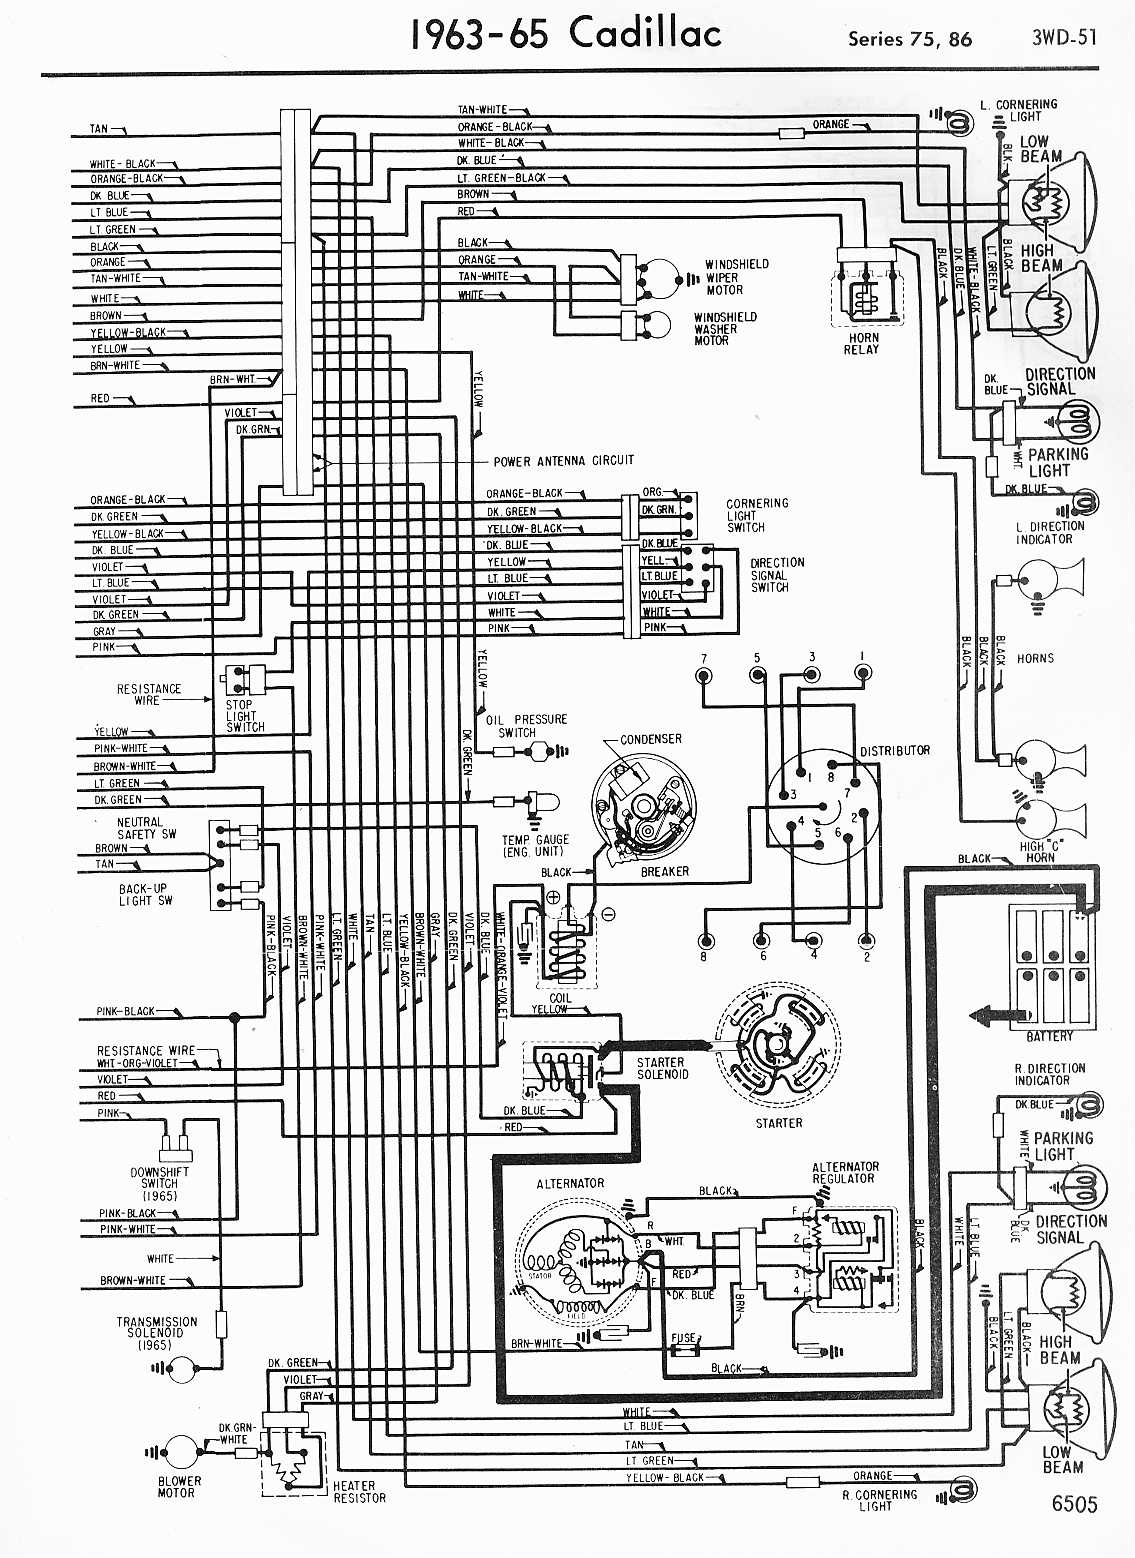 MWireCadi65_3WD 051 cadillac wiring diagrams 1957 1965 1961 Rambler at creativeand.co